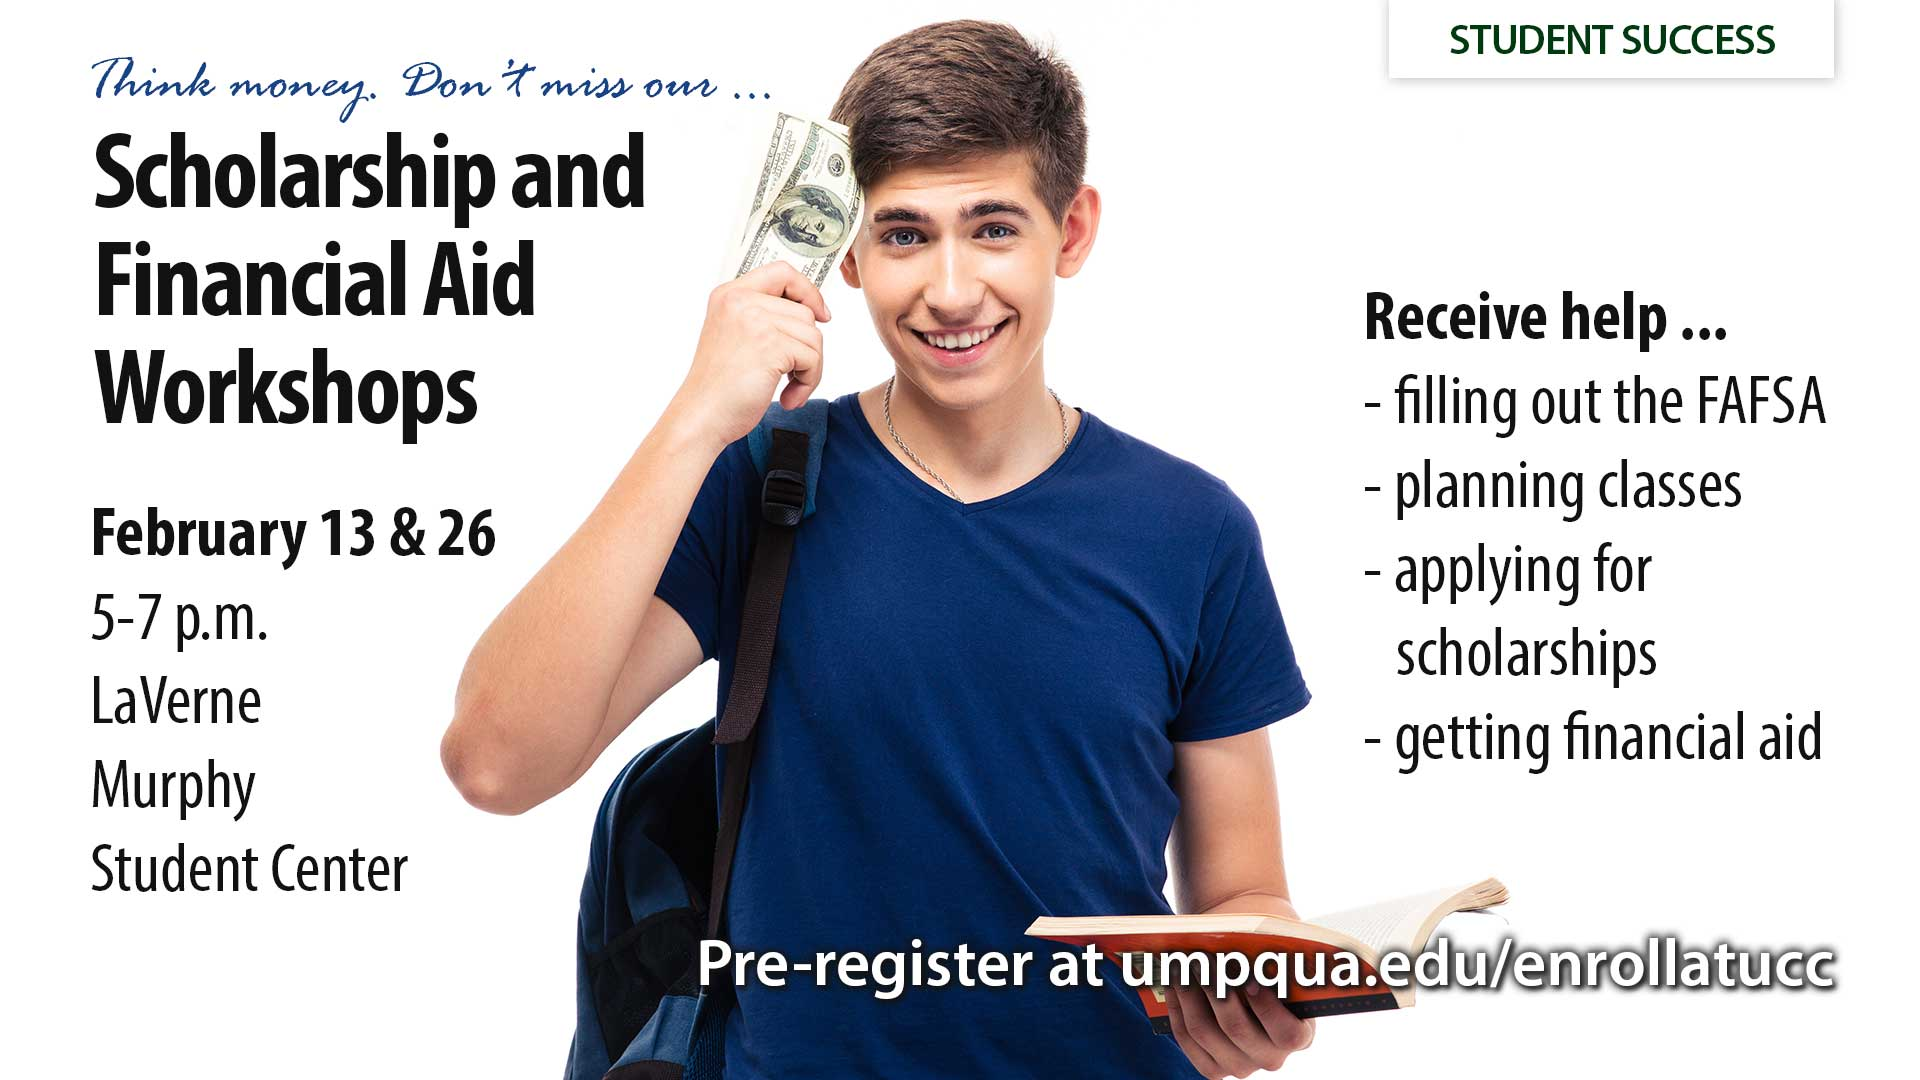 Scholarships and Financial Aid Workshops